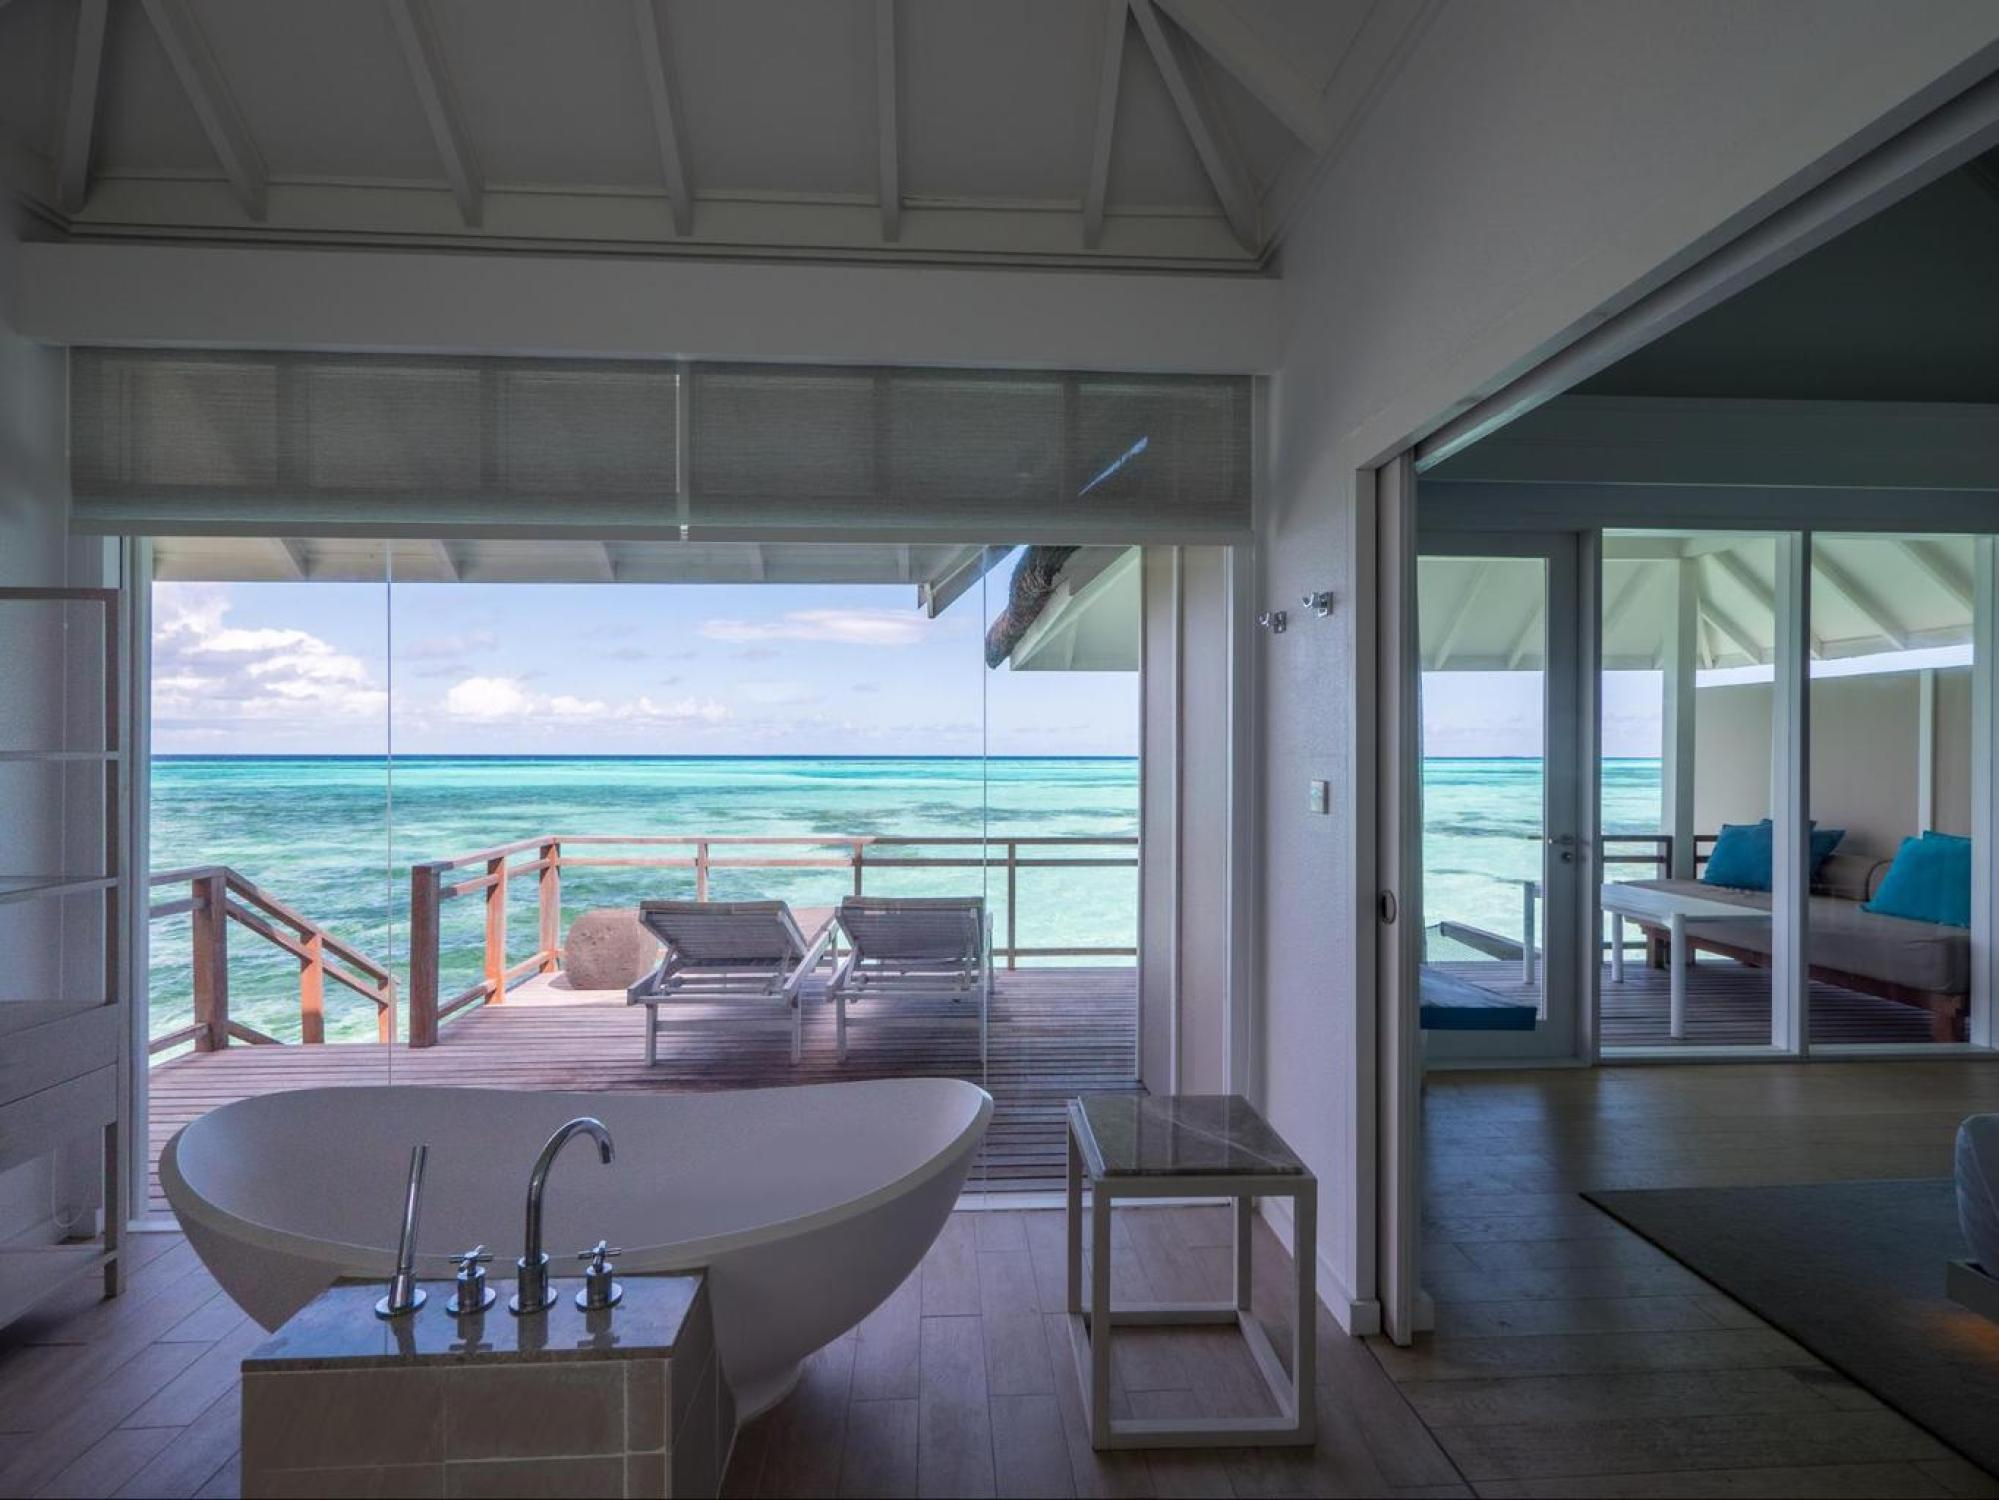 Bathtubs at LUX* Maldives South Ari Atoll